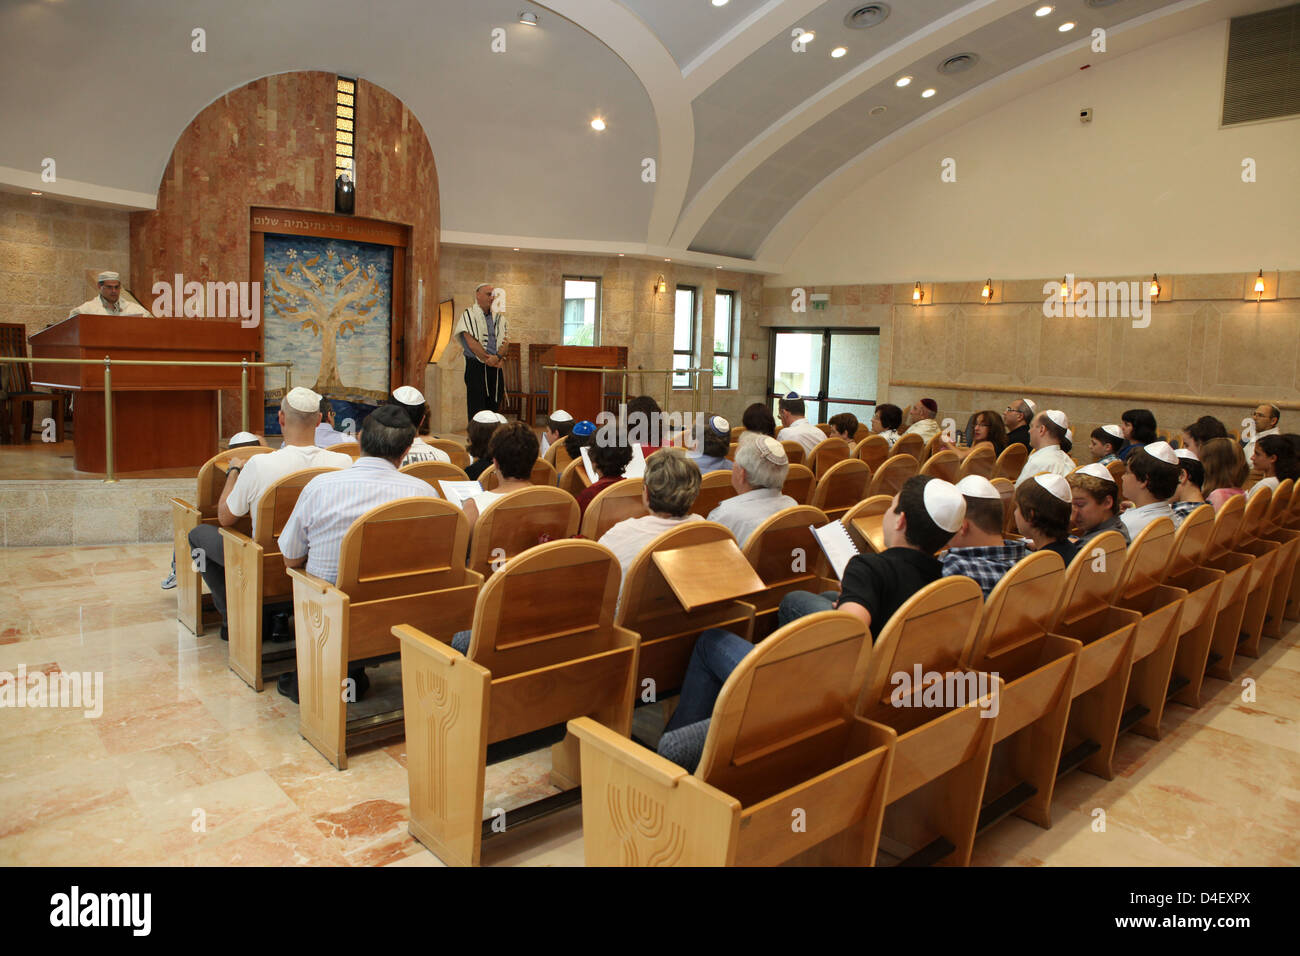 Israel, Tel Aviv, Beit Daniel, Tel Aviv's first Reform Synagogue the prayer hall - Stock Image